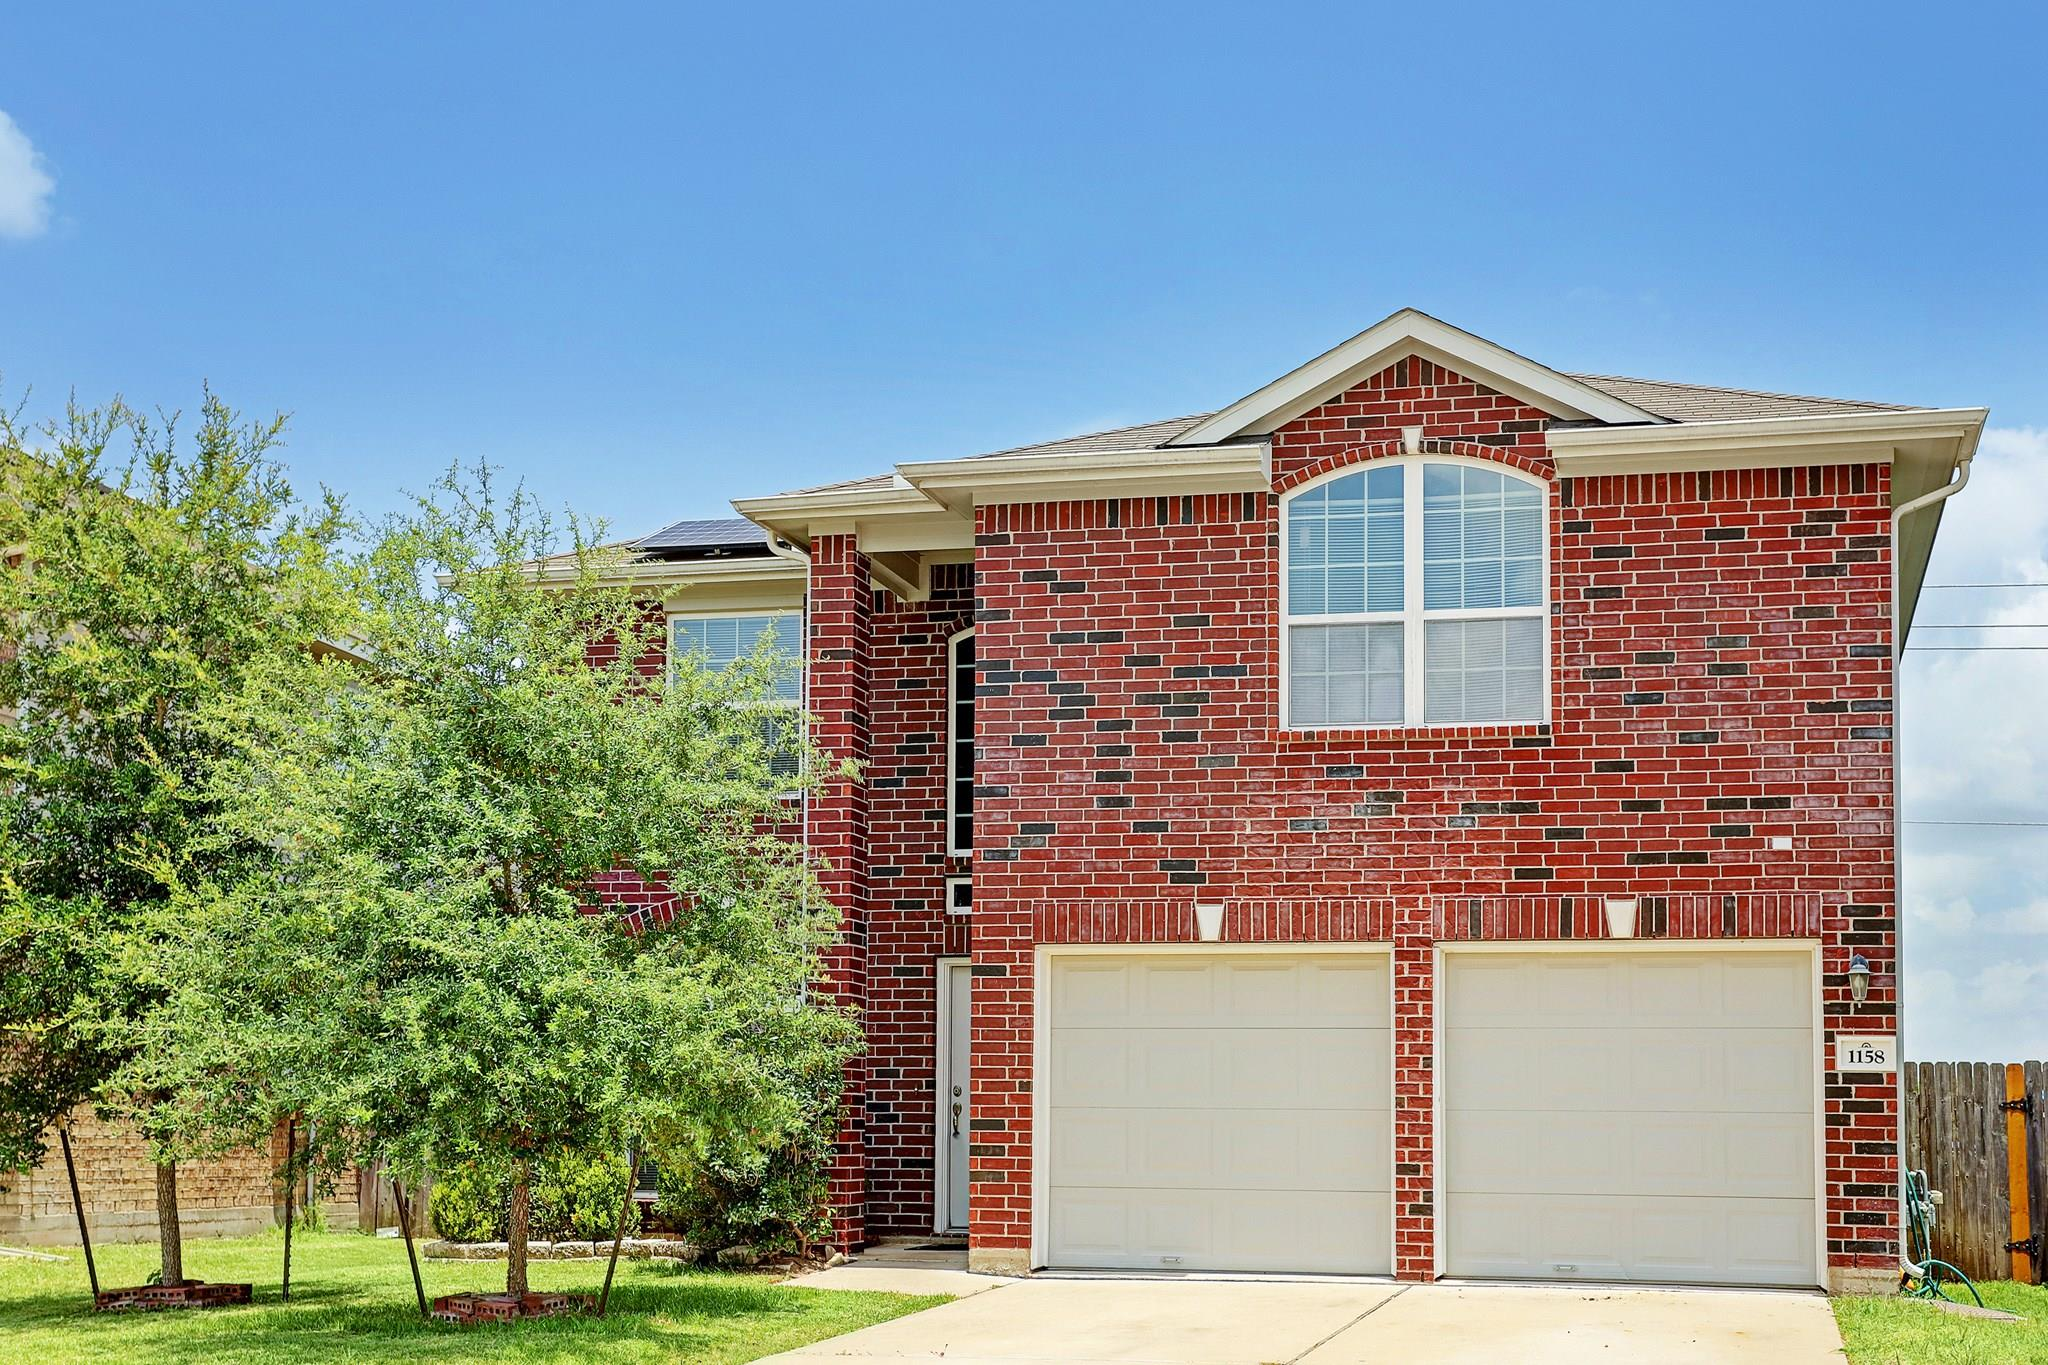 1158 Crestmont Place Loop Property Photo - Missouri City, TX real estate listing